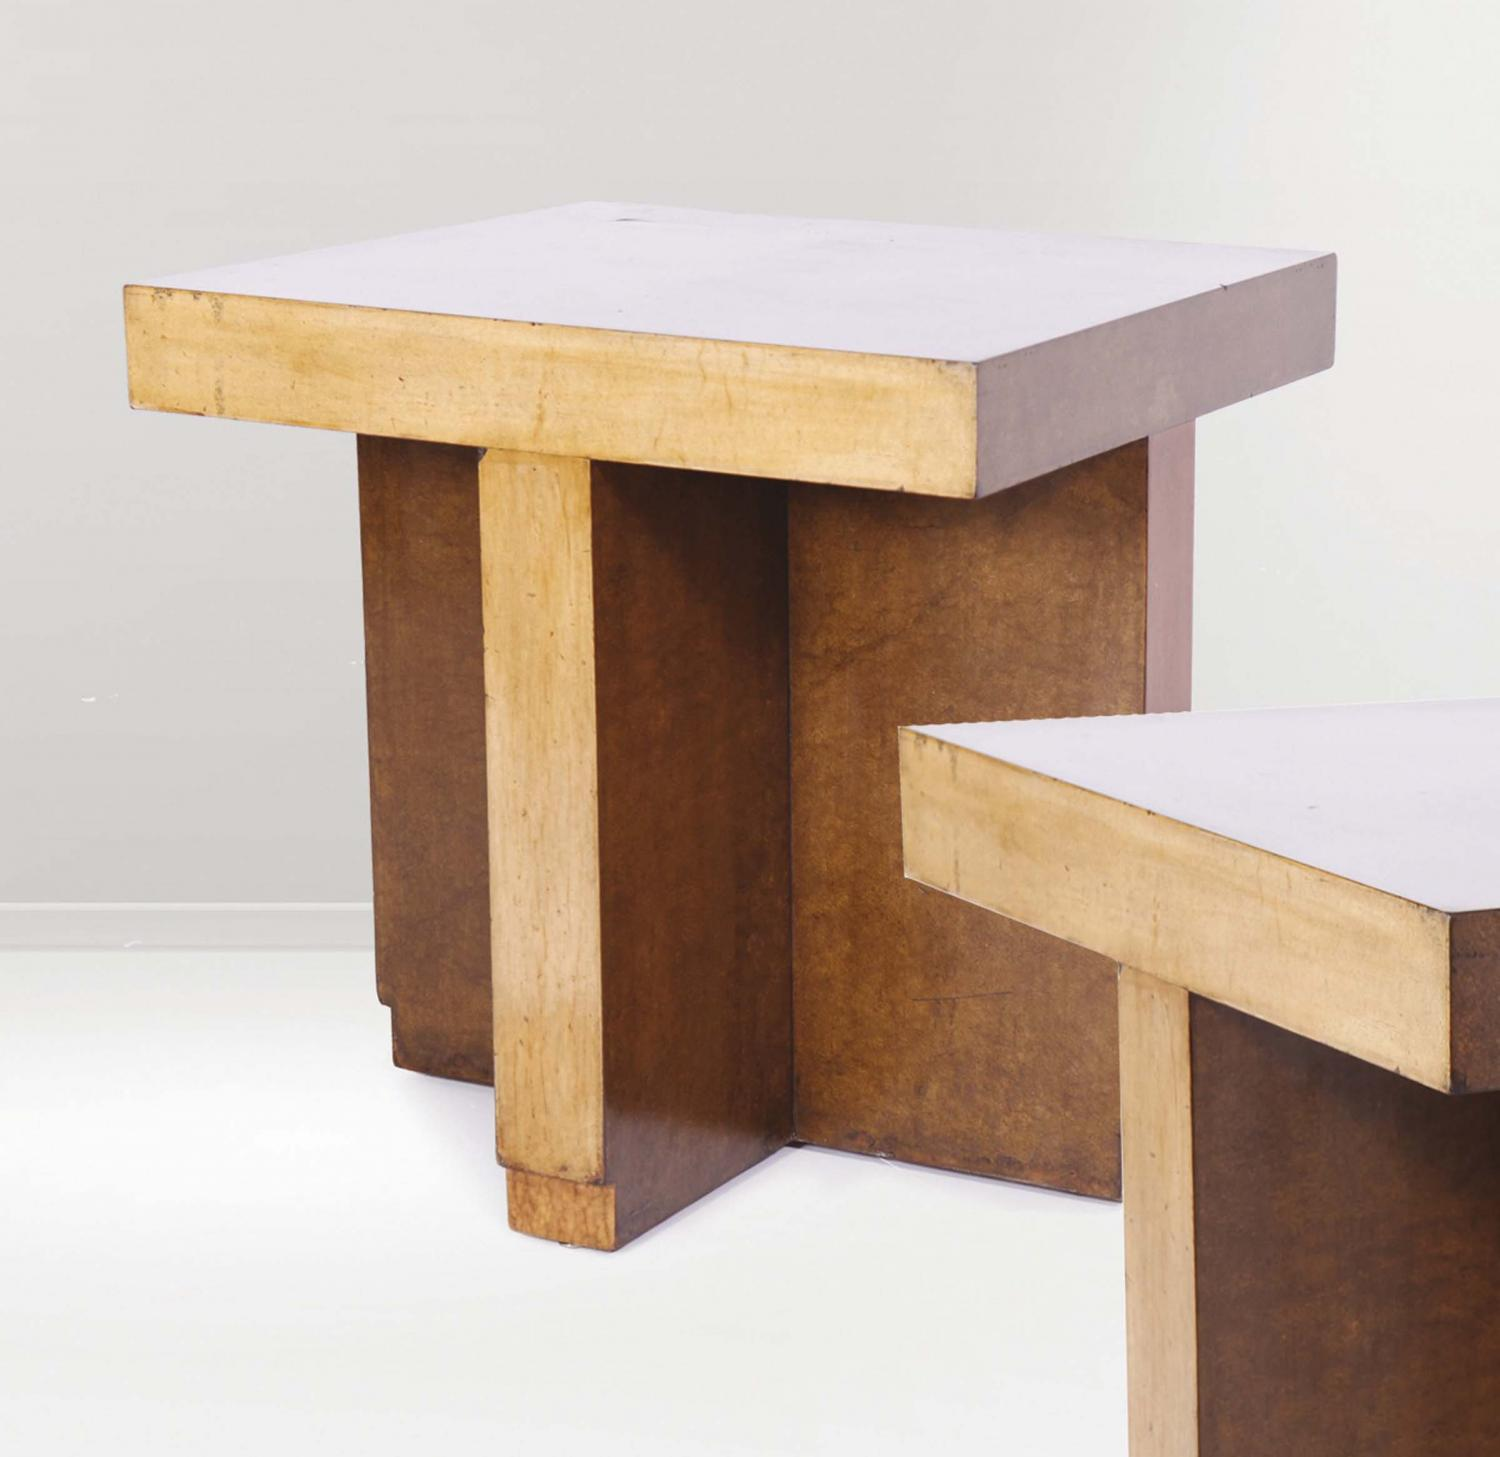 Pagano Pogatschnig-Levi Montalcini side table